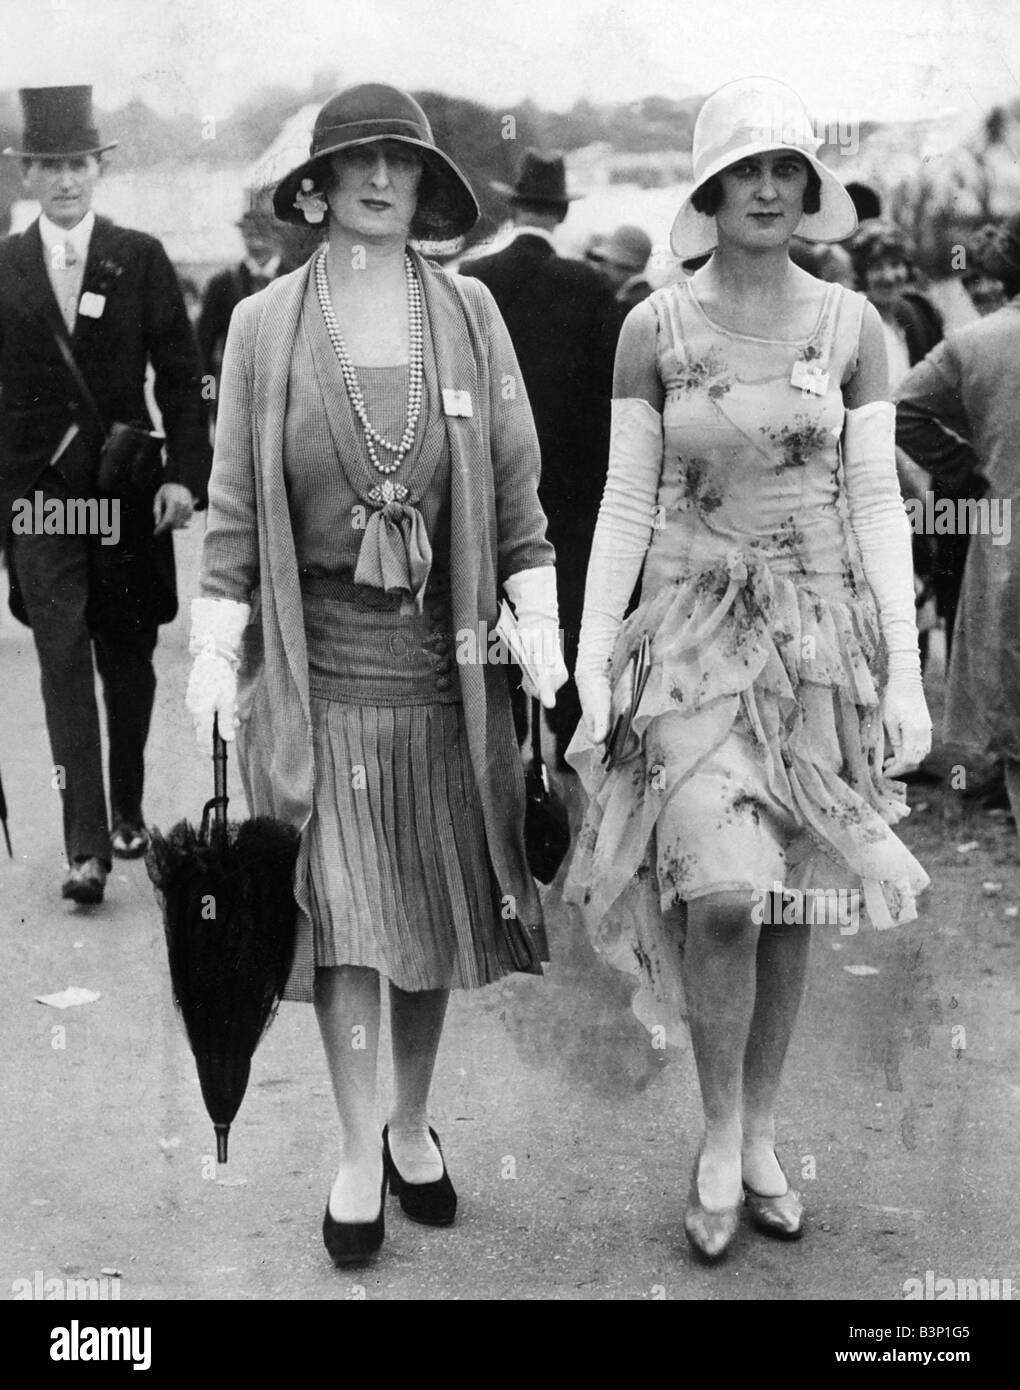 Difference between 20s 30s fashion